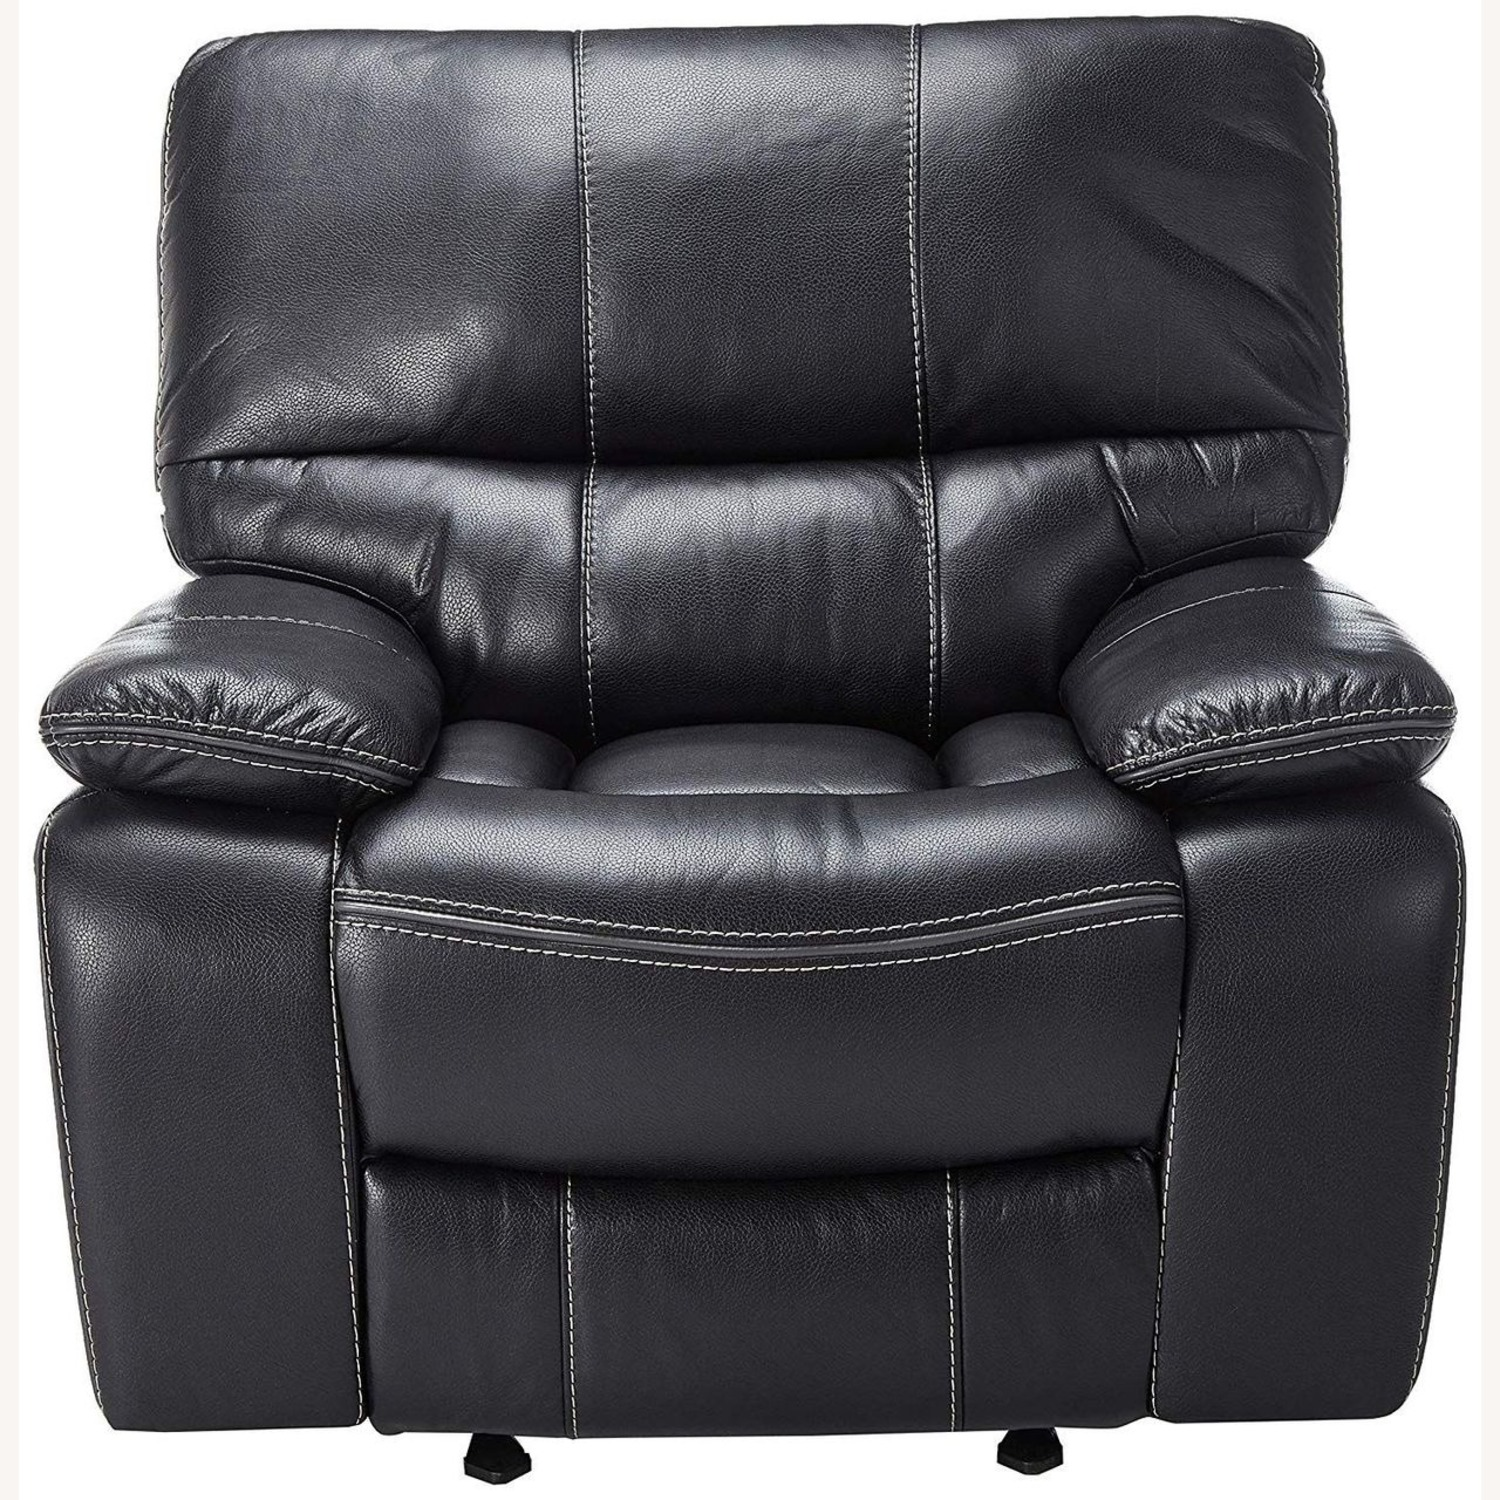 Glider Recliner W/ Scooped Seating In Black Finish - image-1